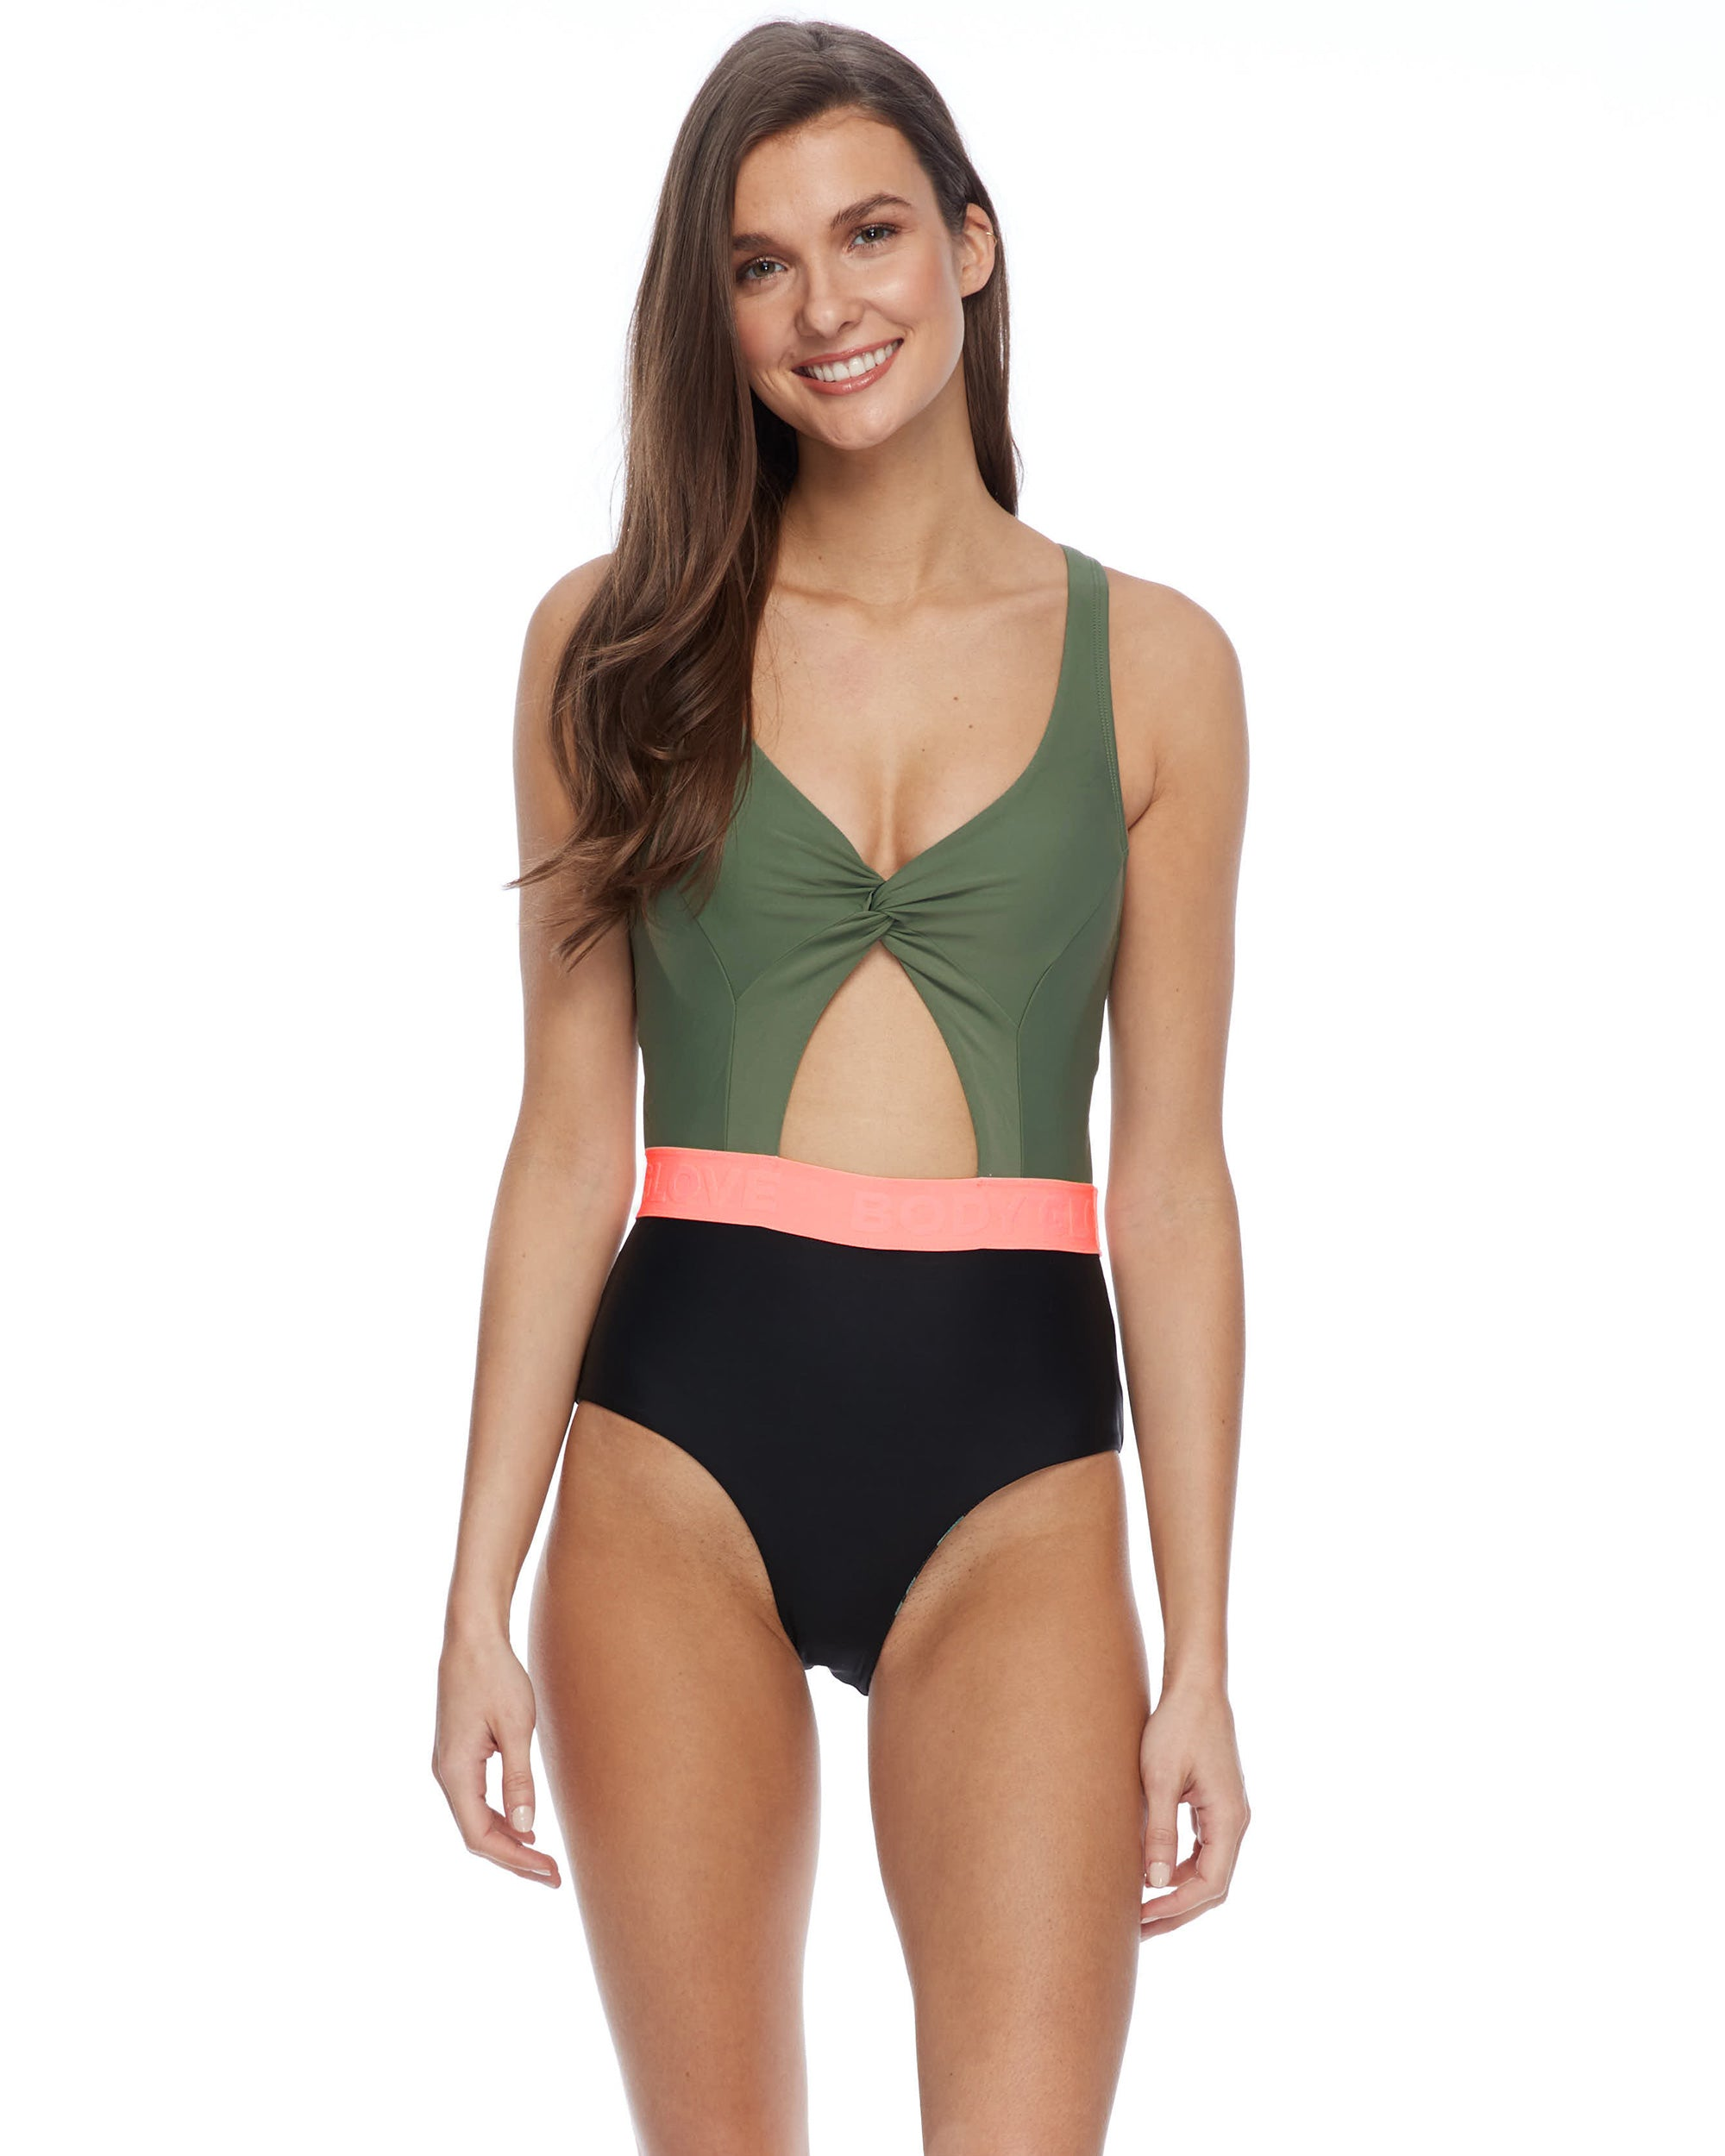 Kid On the Block Pearl One-Piece Swimsuit - Cactus